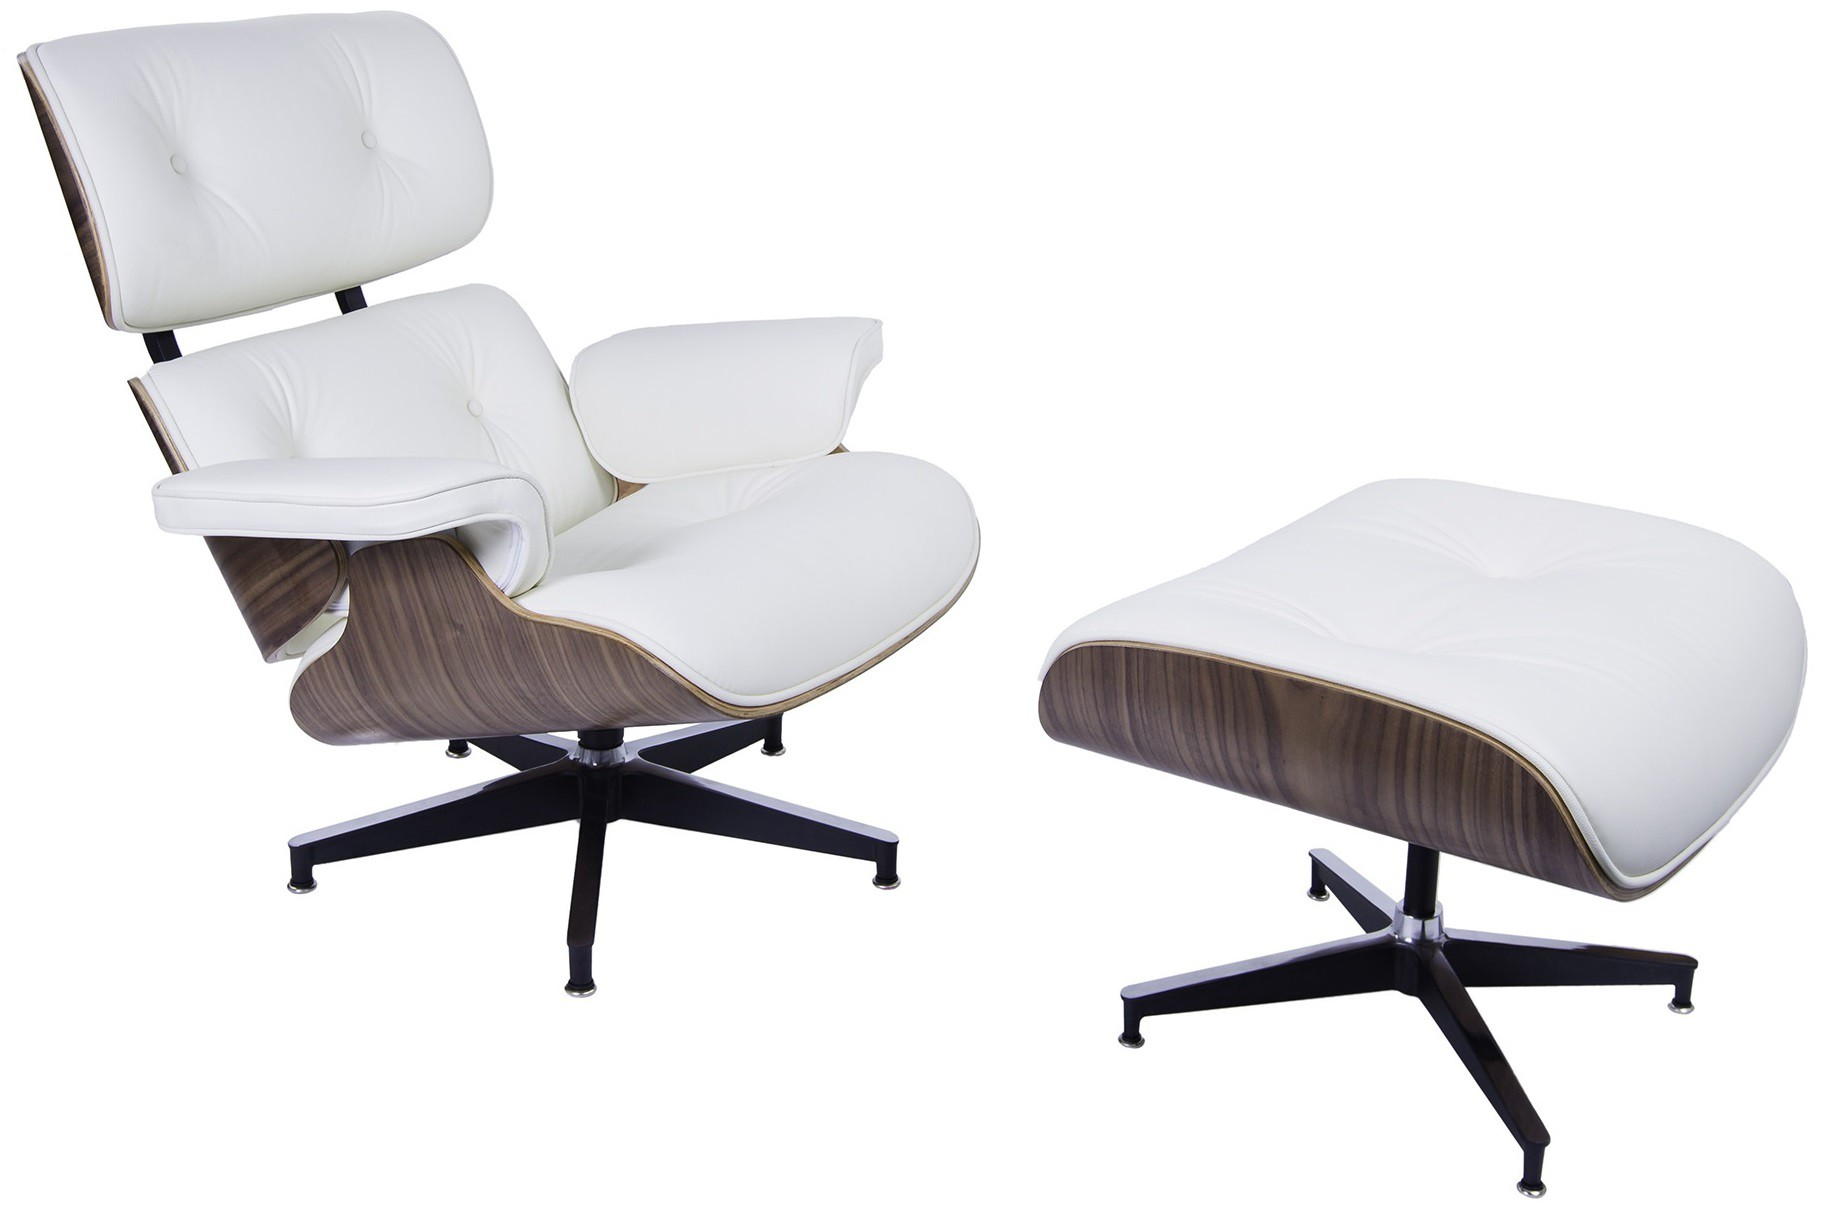 Design Fauteuil Met Hocker.Charles Eames Lounge Stoel Met Hocker Lounge Xl Design Lounge